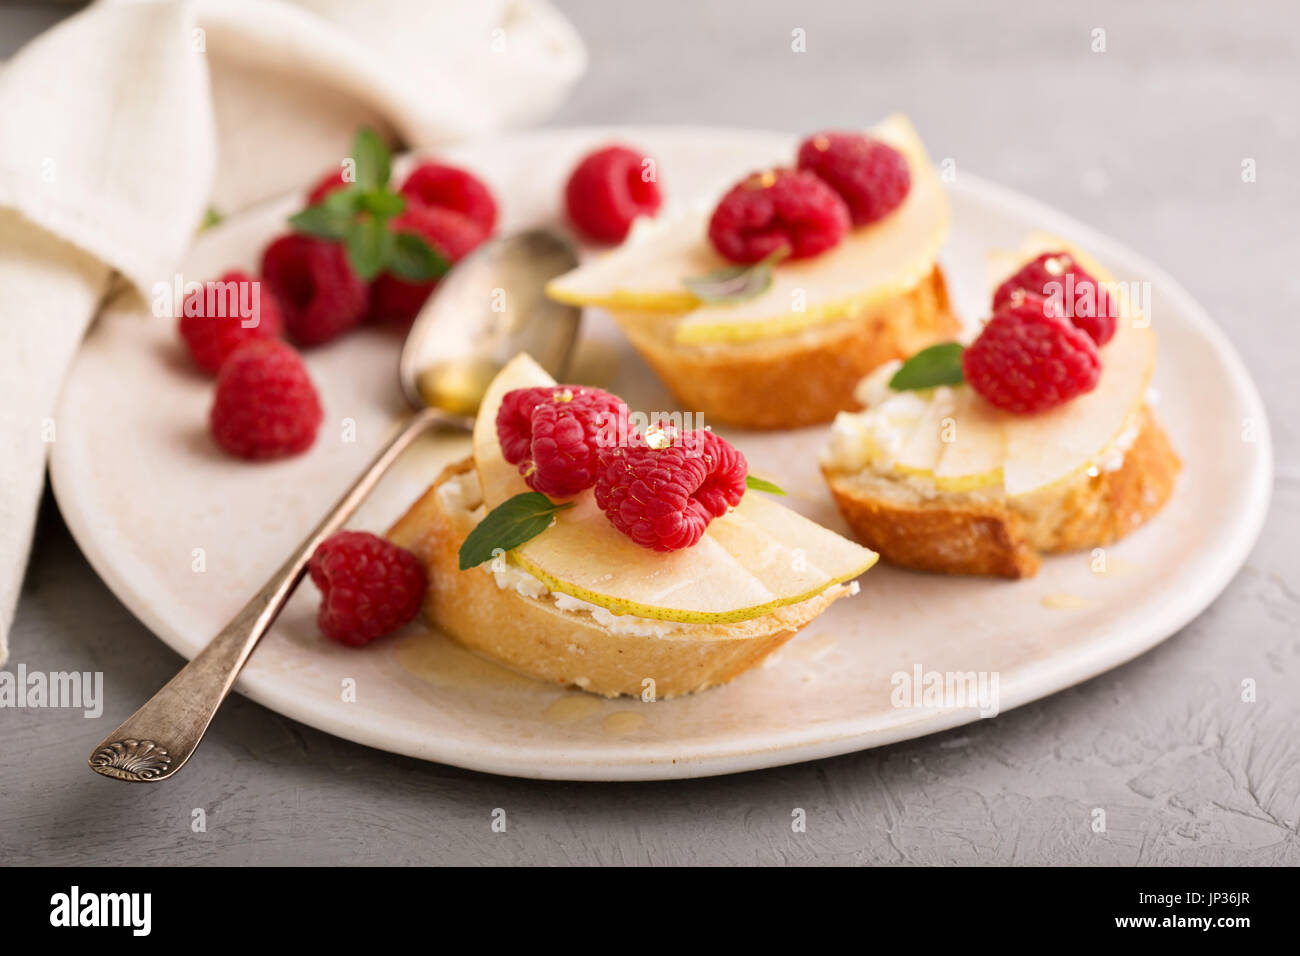 Open faced sandwiches with cheese, fresh pears and raspberry - Stock Image